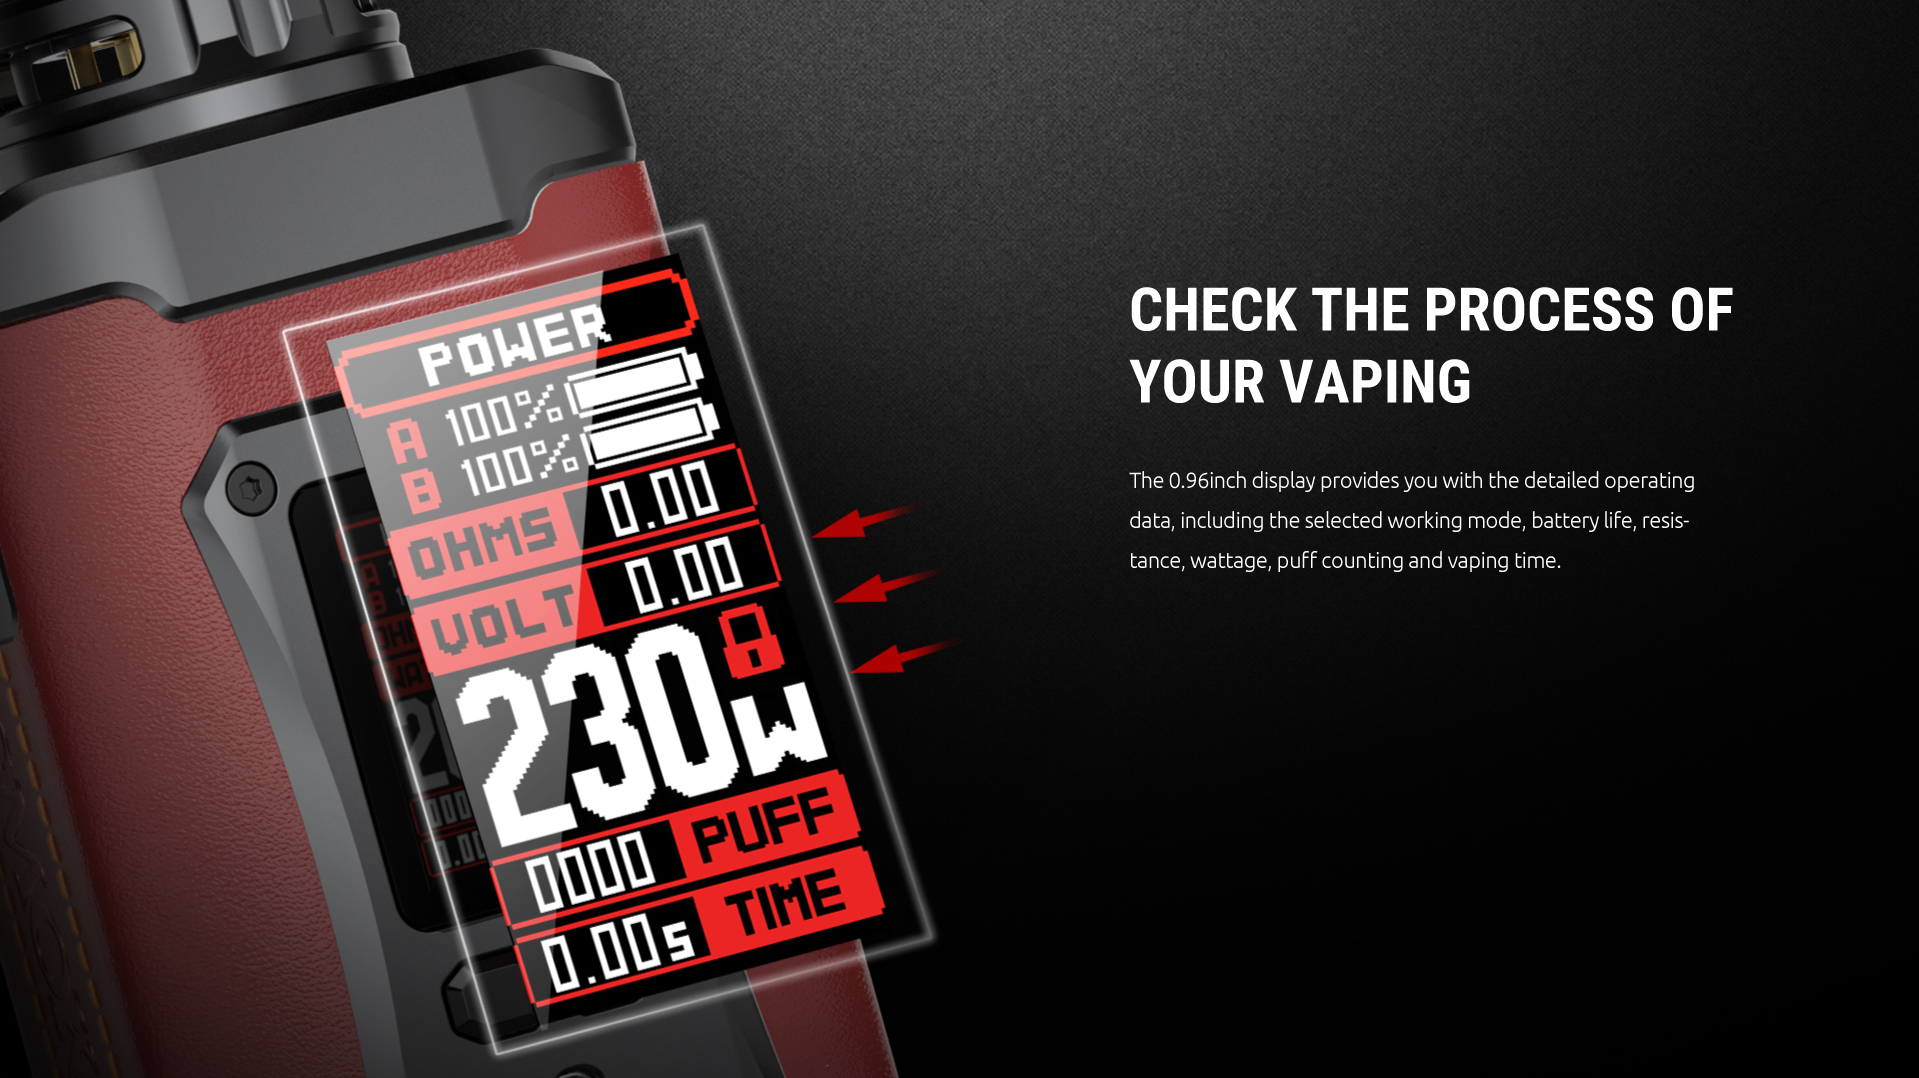 smok 230w power